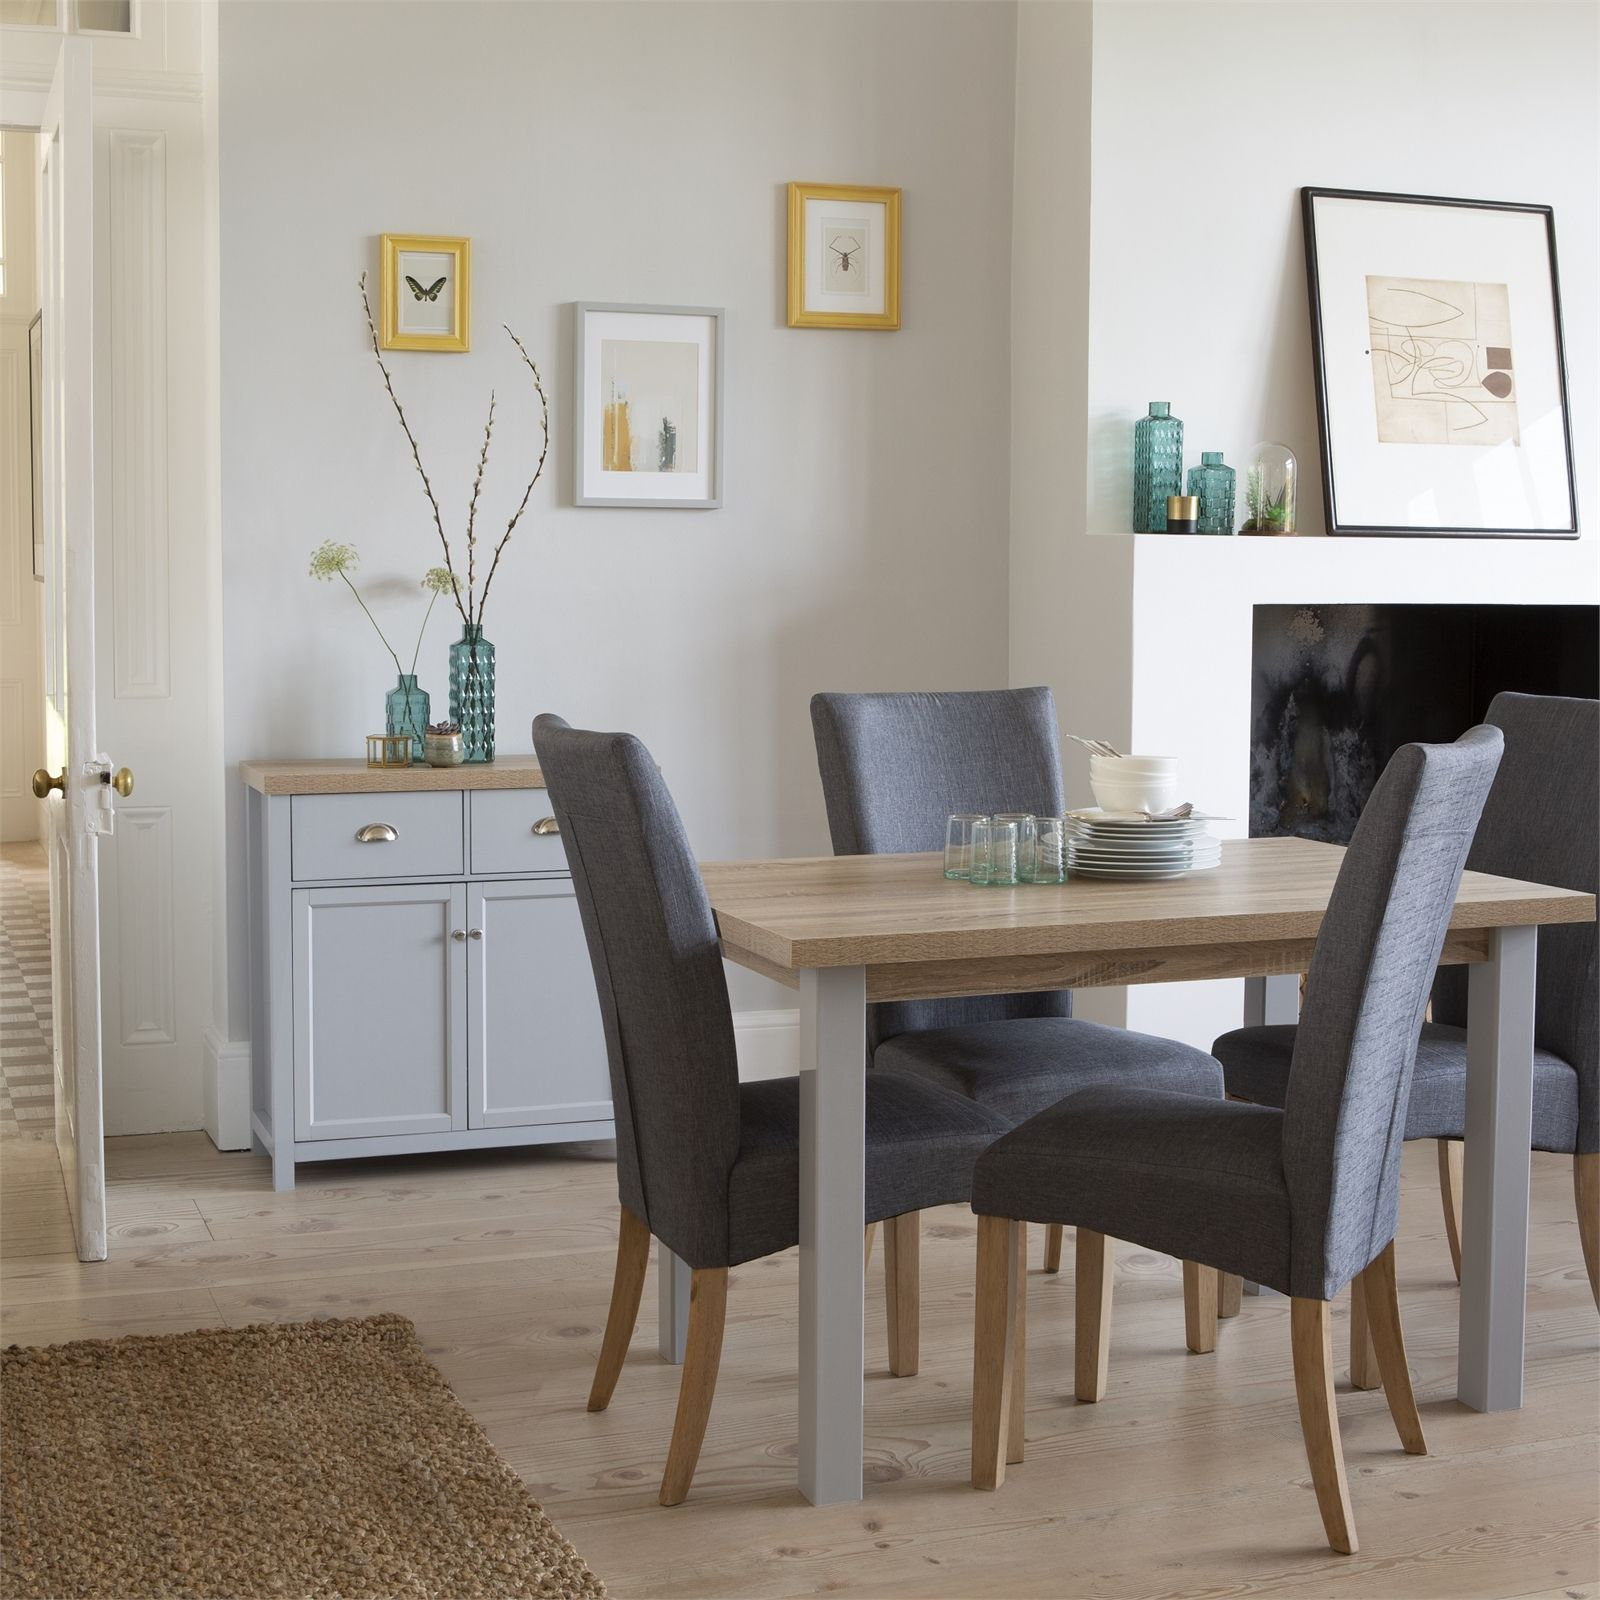 Harlow Dining Table And 6 Chairs Oak And Grey At Homebase